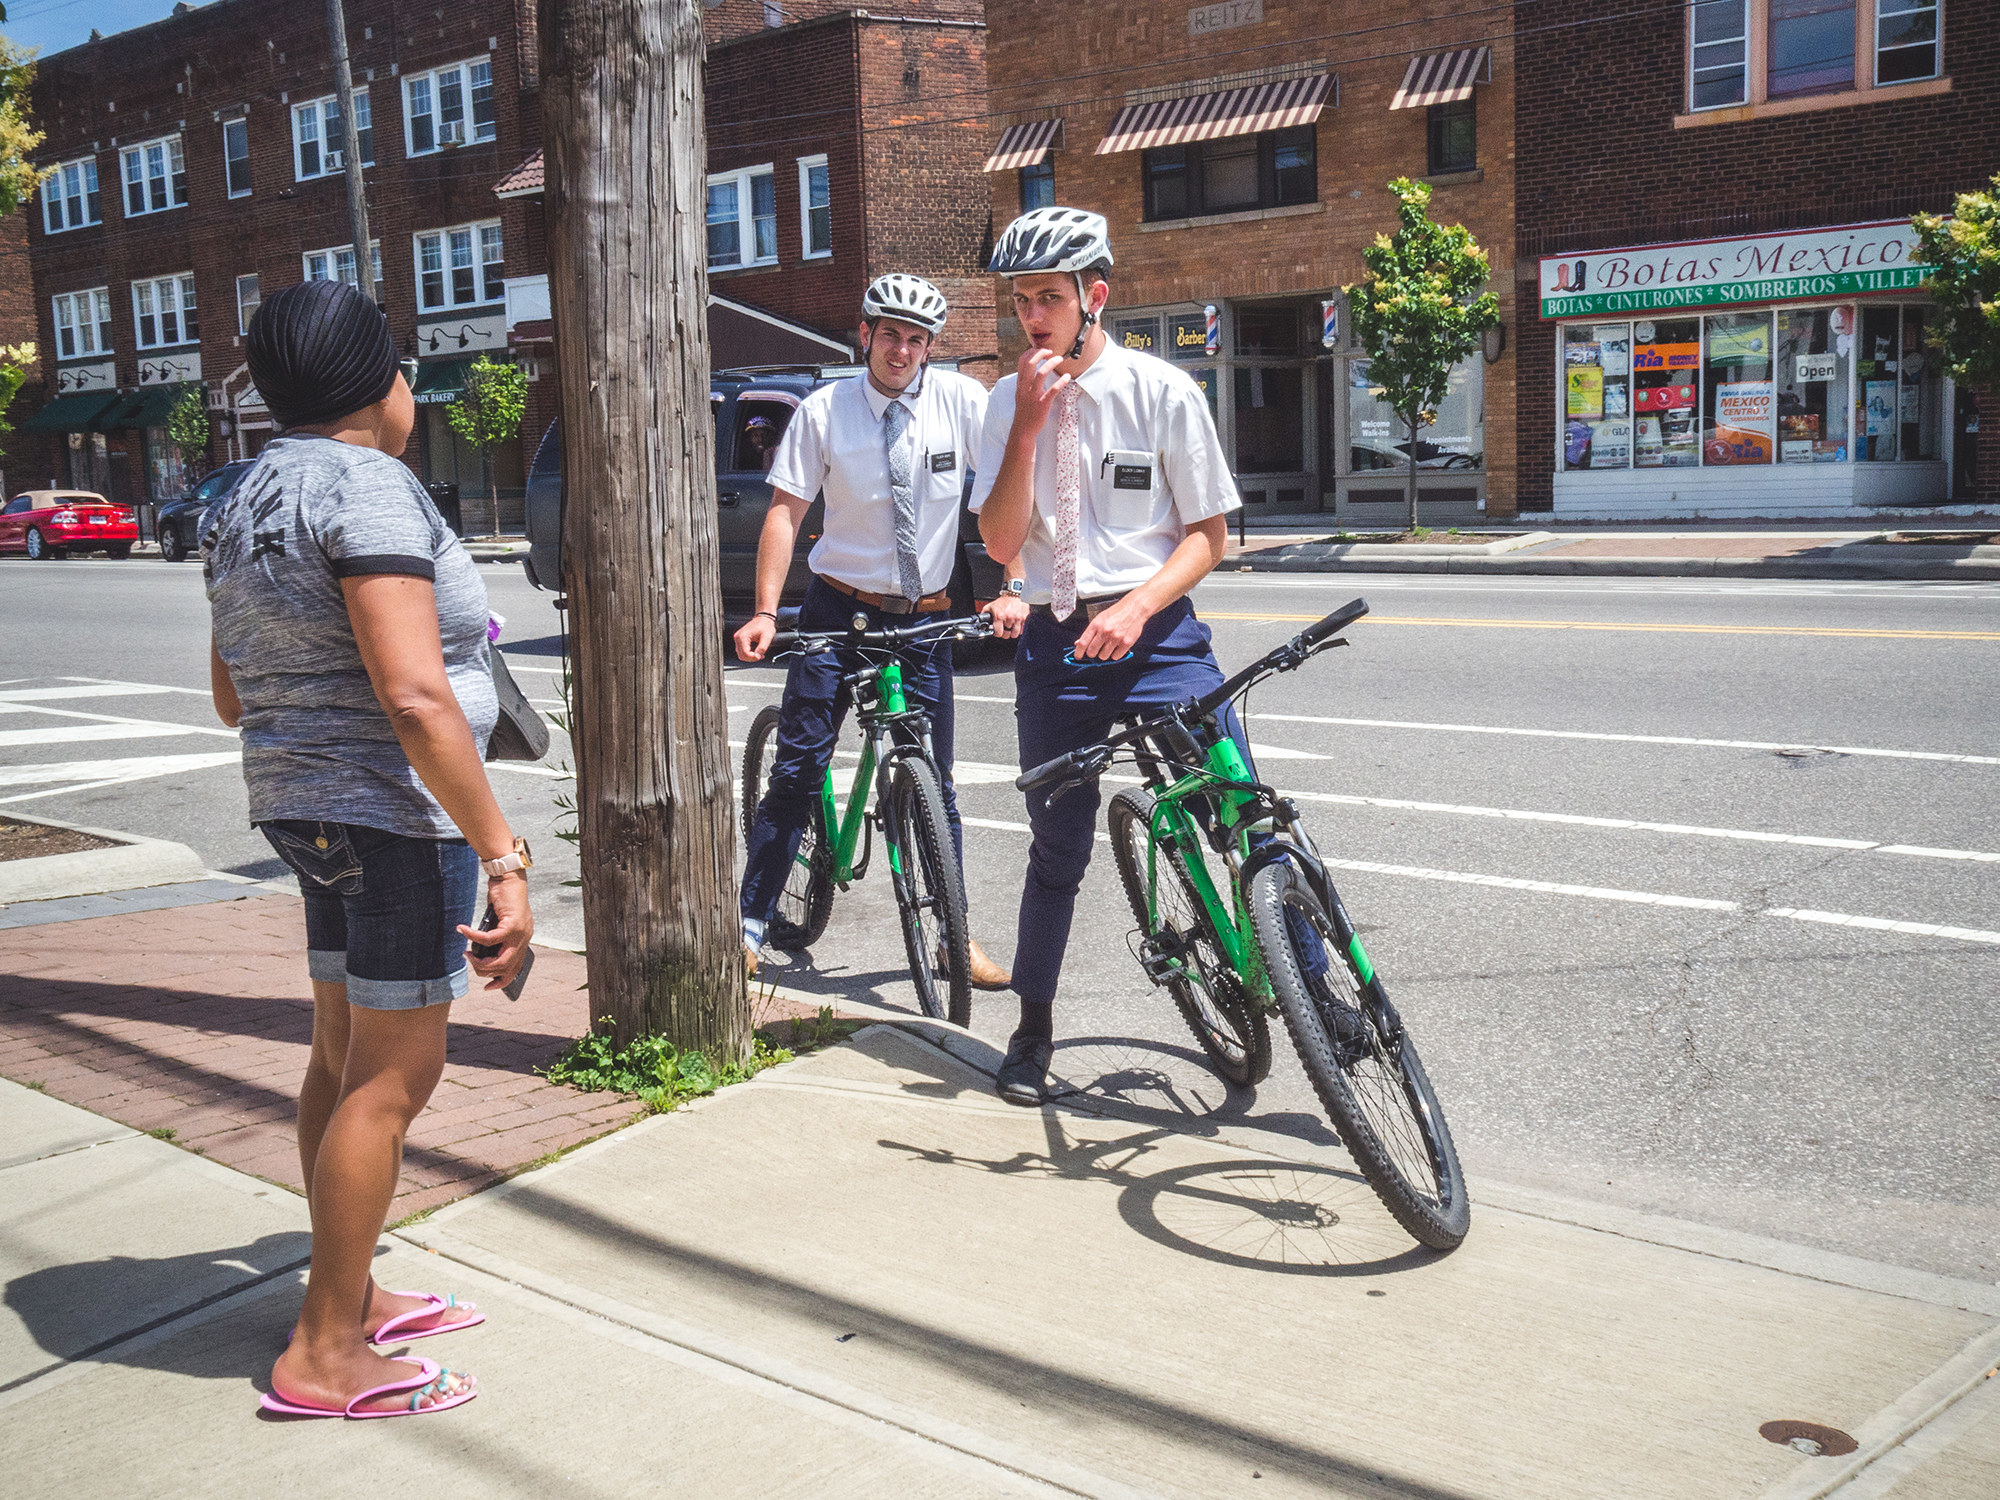 Two men in ties on bikes talk to a woman on the sidewalk